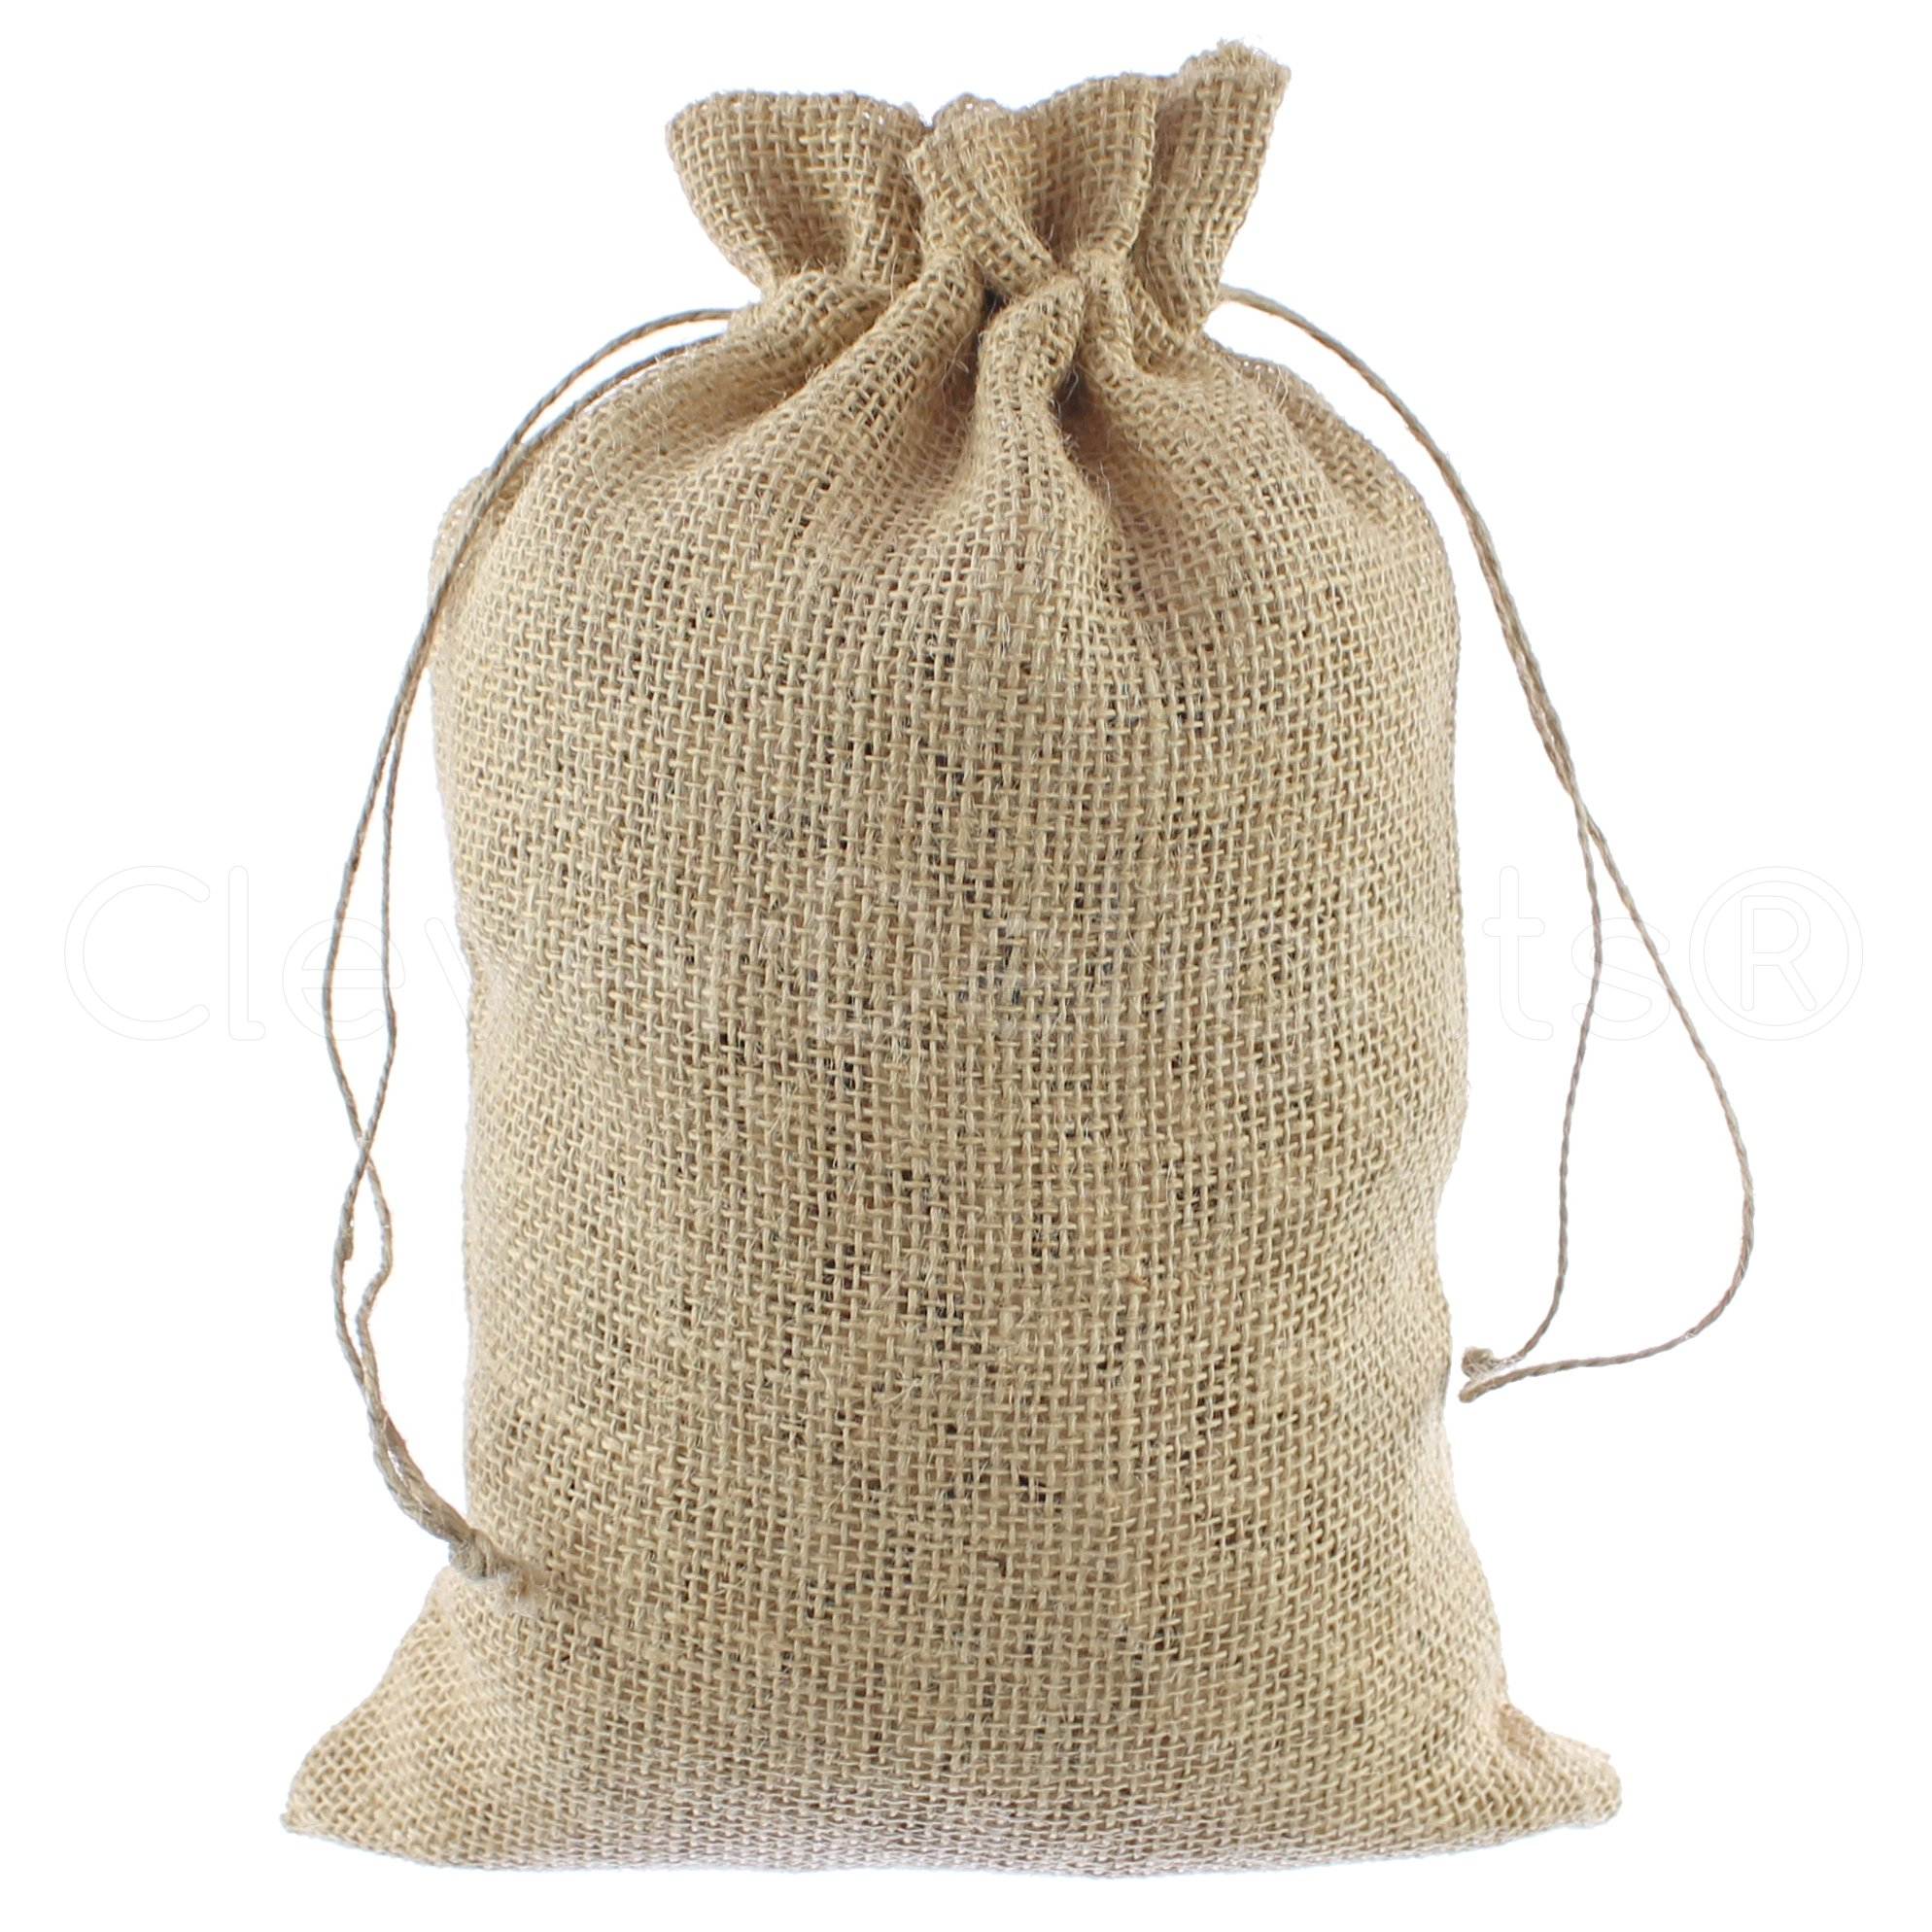 CleverDelights 8'' x 12'' Burlap Bags with Natural Jute Drawstring - 5 Pack - Burlap Pouch Sack Favor Bag for Showers Weddings Parties and Receptions - 8x12 inch by CleverDelights (Image #2)